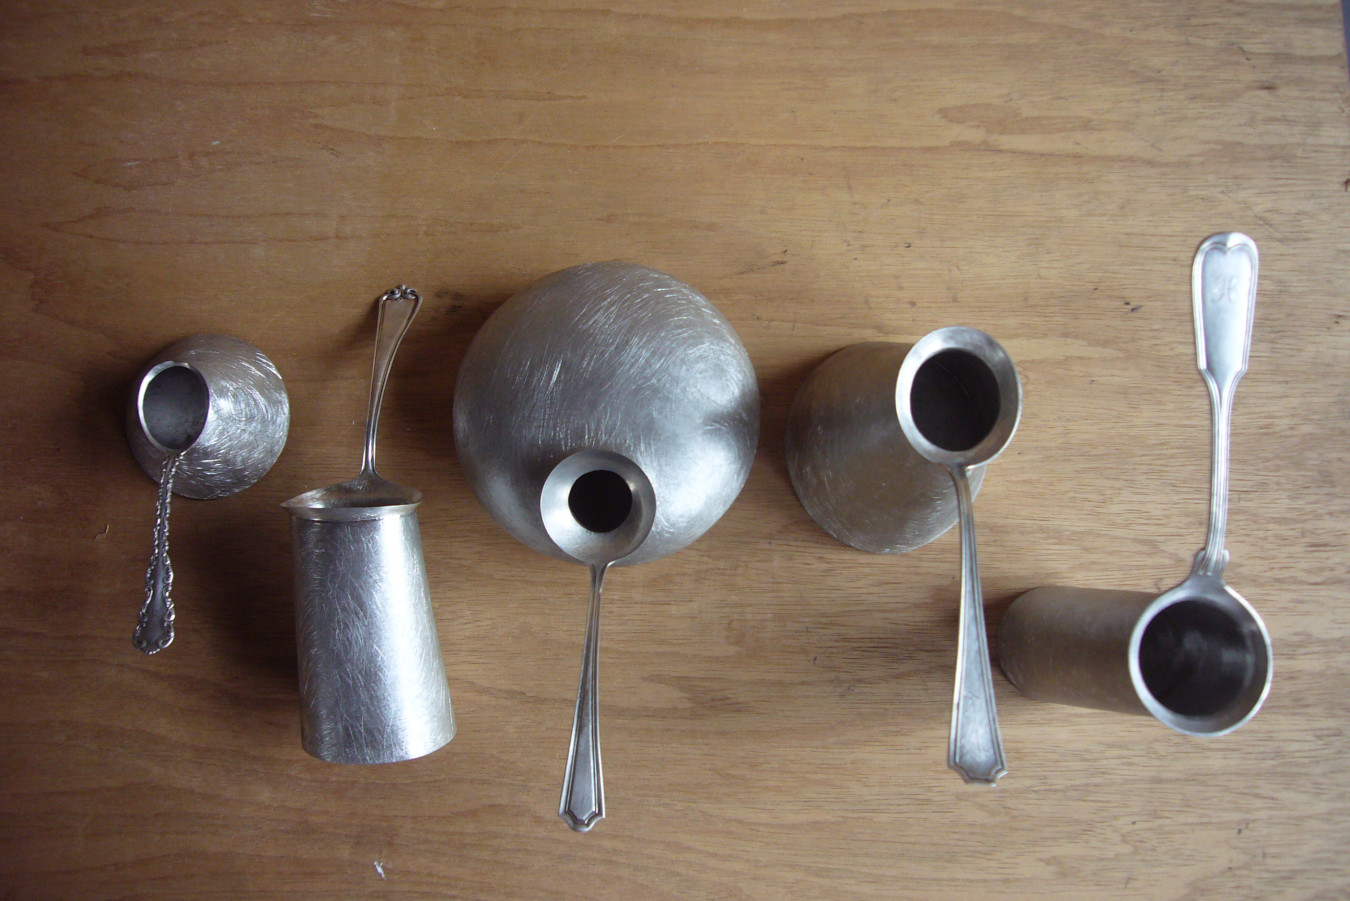 Image of a series of extended and exaggerated metal spoons, playig with a tool that is used for measuring ingredients in the kitchen